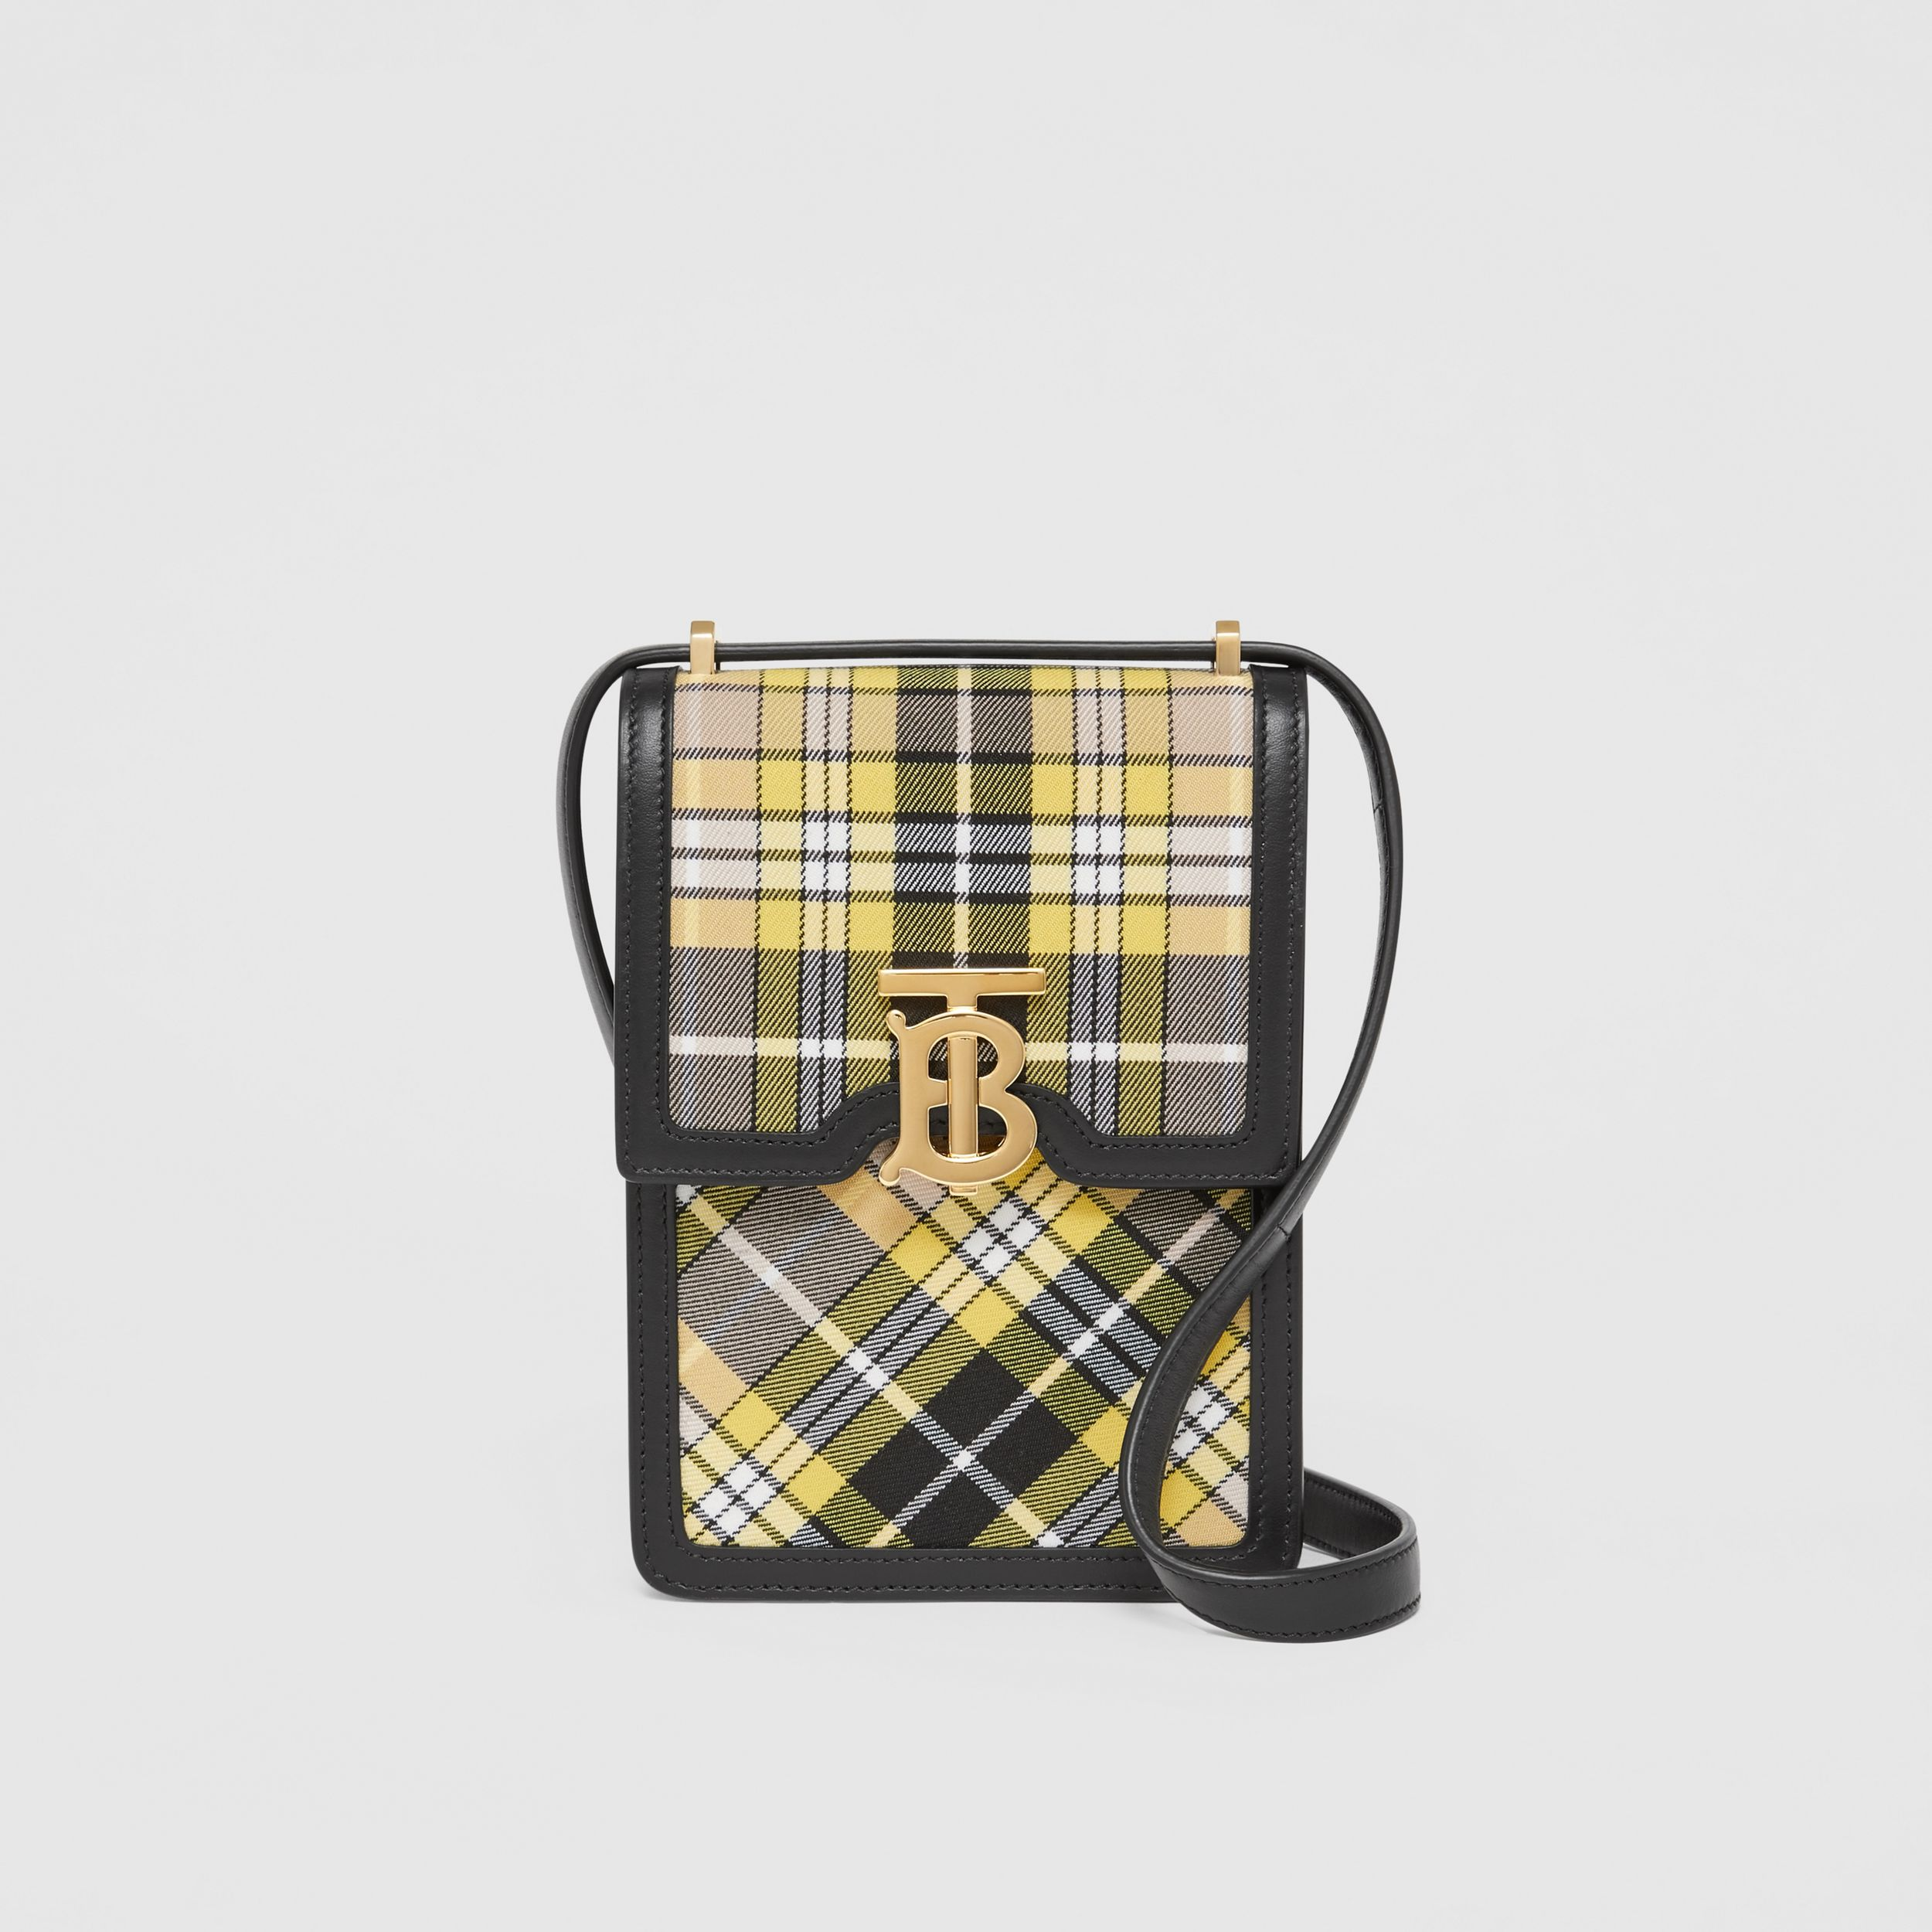 Tartan Cotton and Leather Robin Bag in Marigold Yellow - Women | Burberry United Kingdom - 1